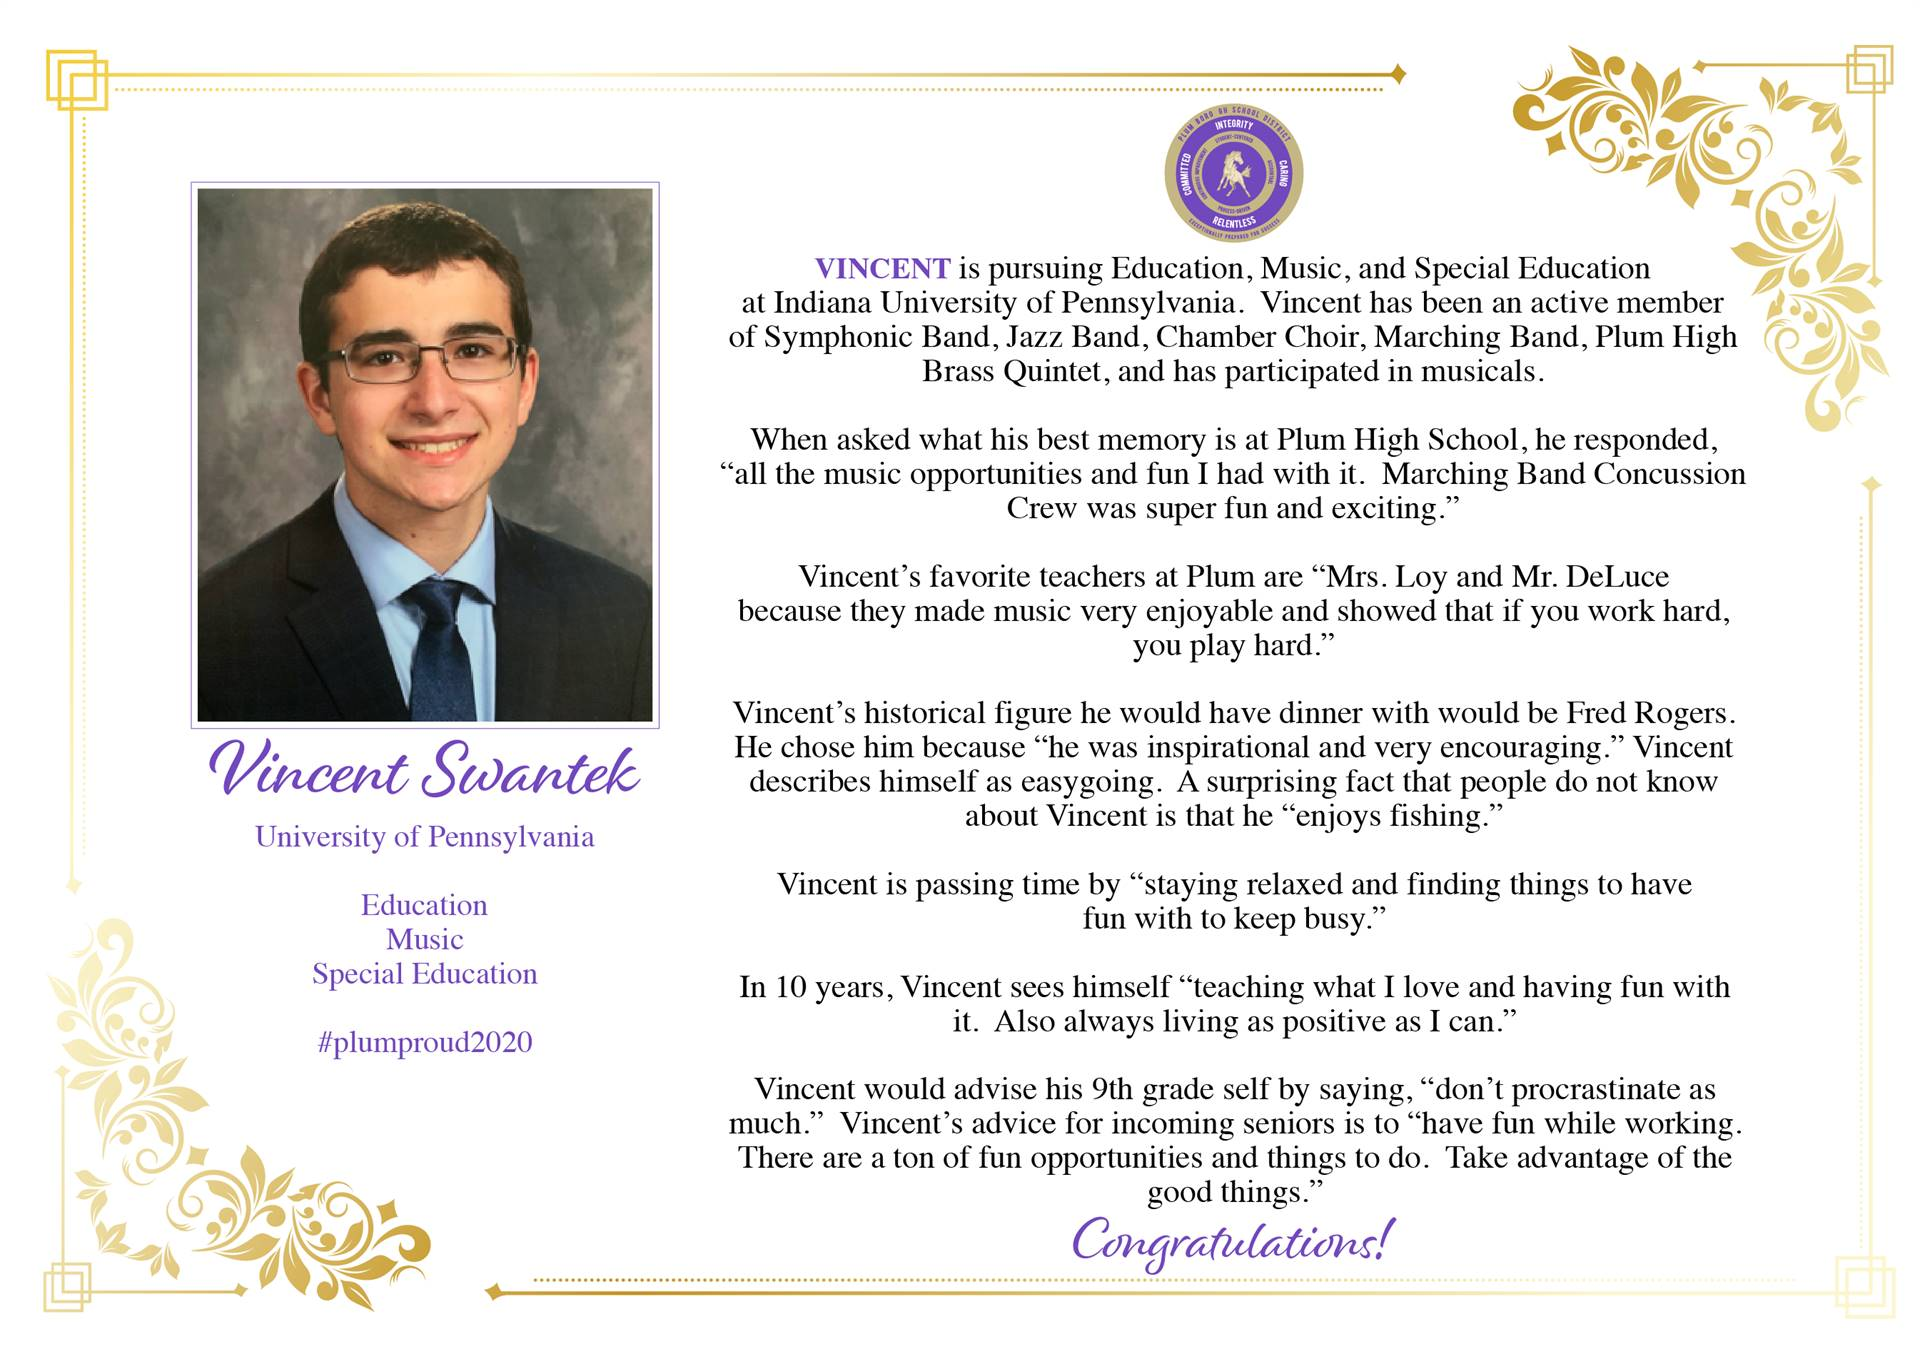 Senior Shout Out to Vincent Swantek